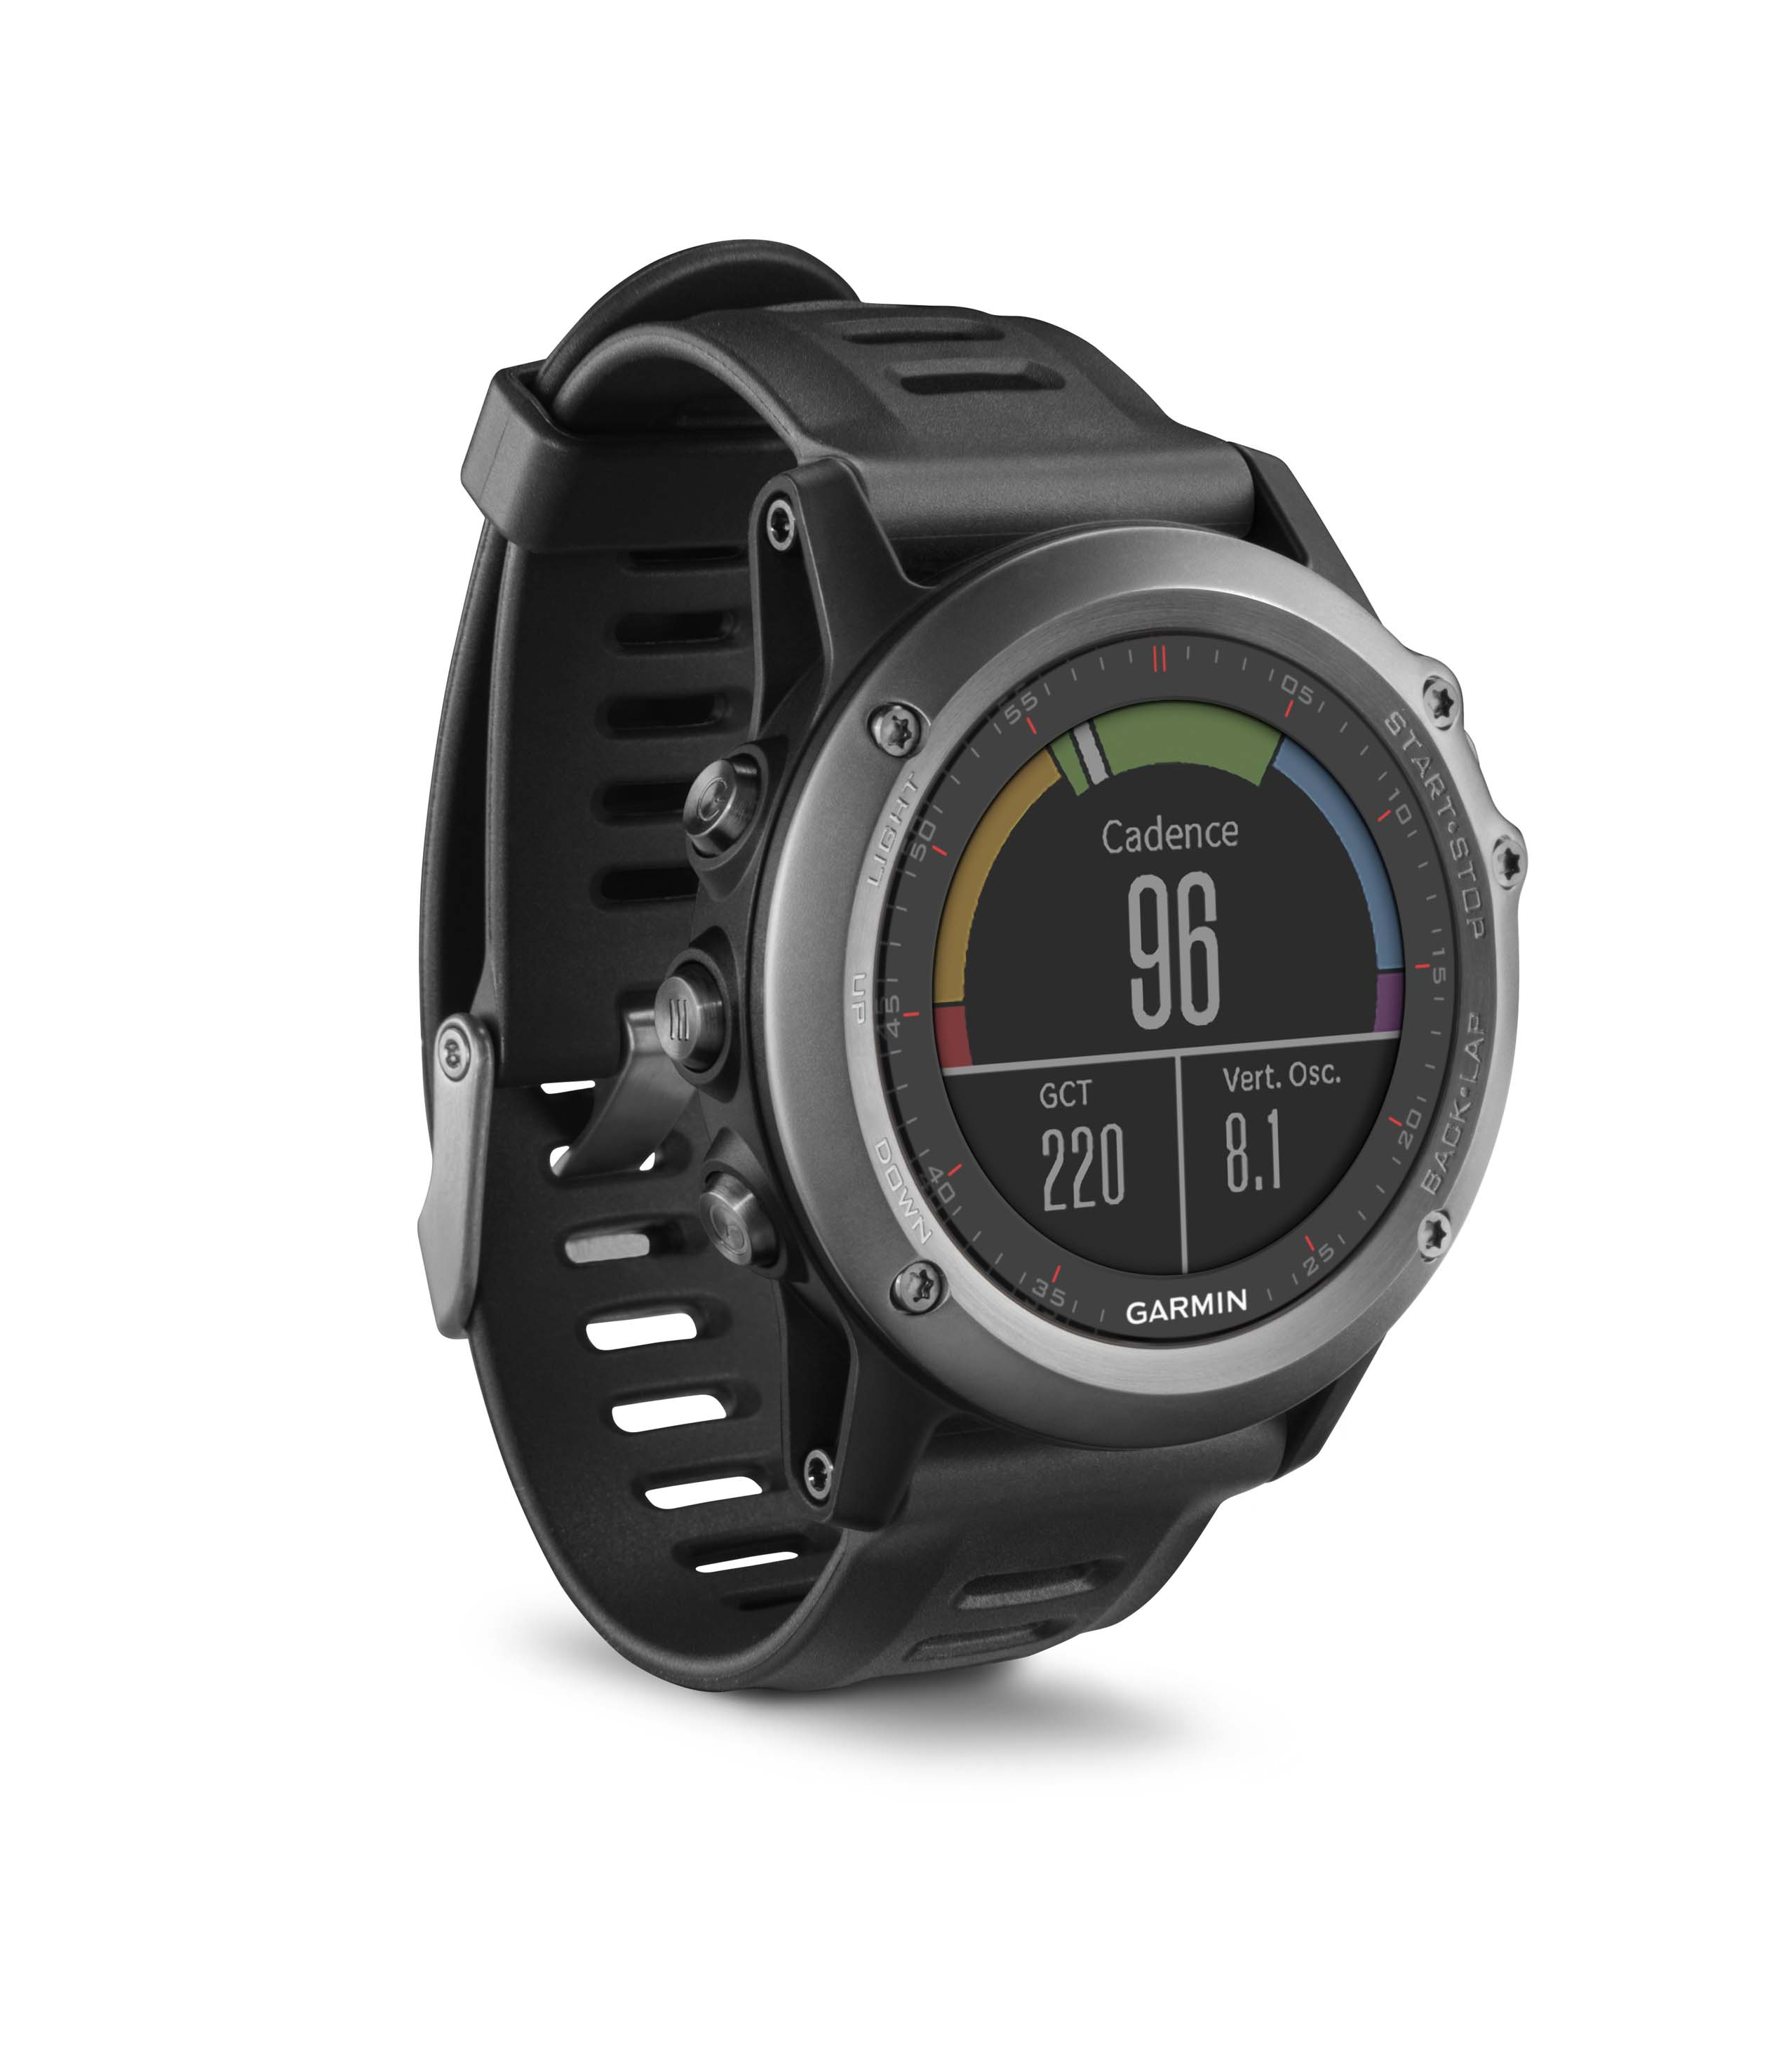 GARMIN_Fenix3_grey-13.jpg